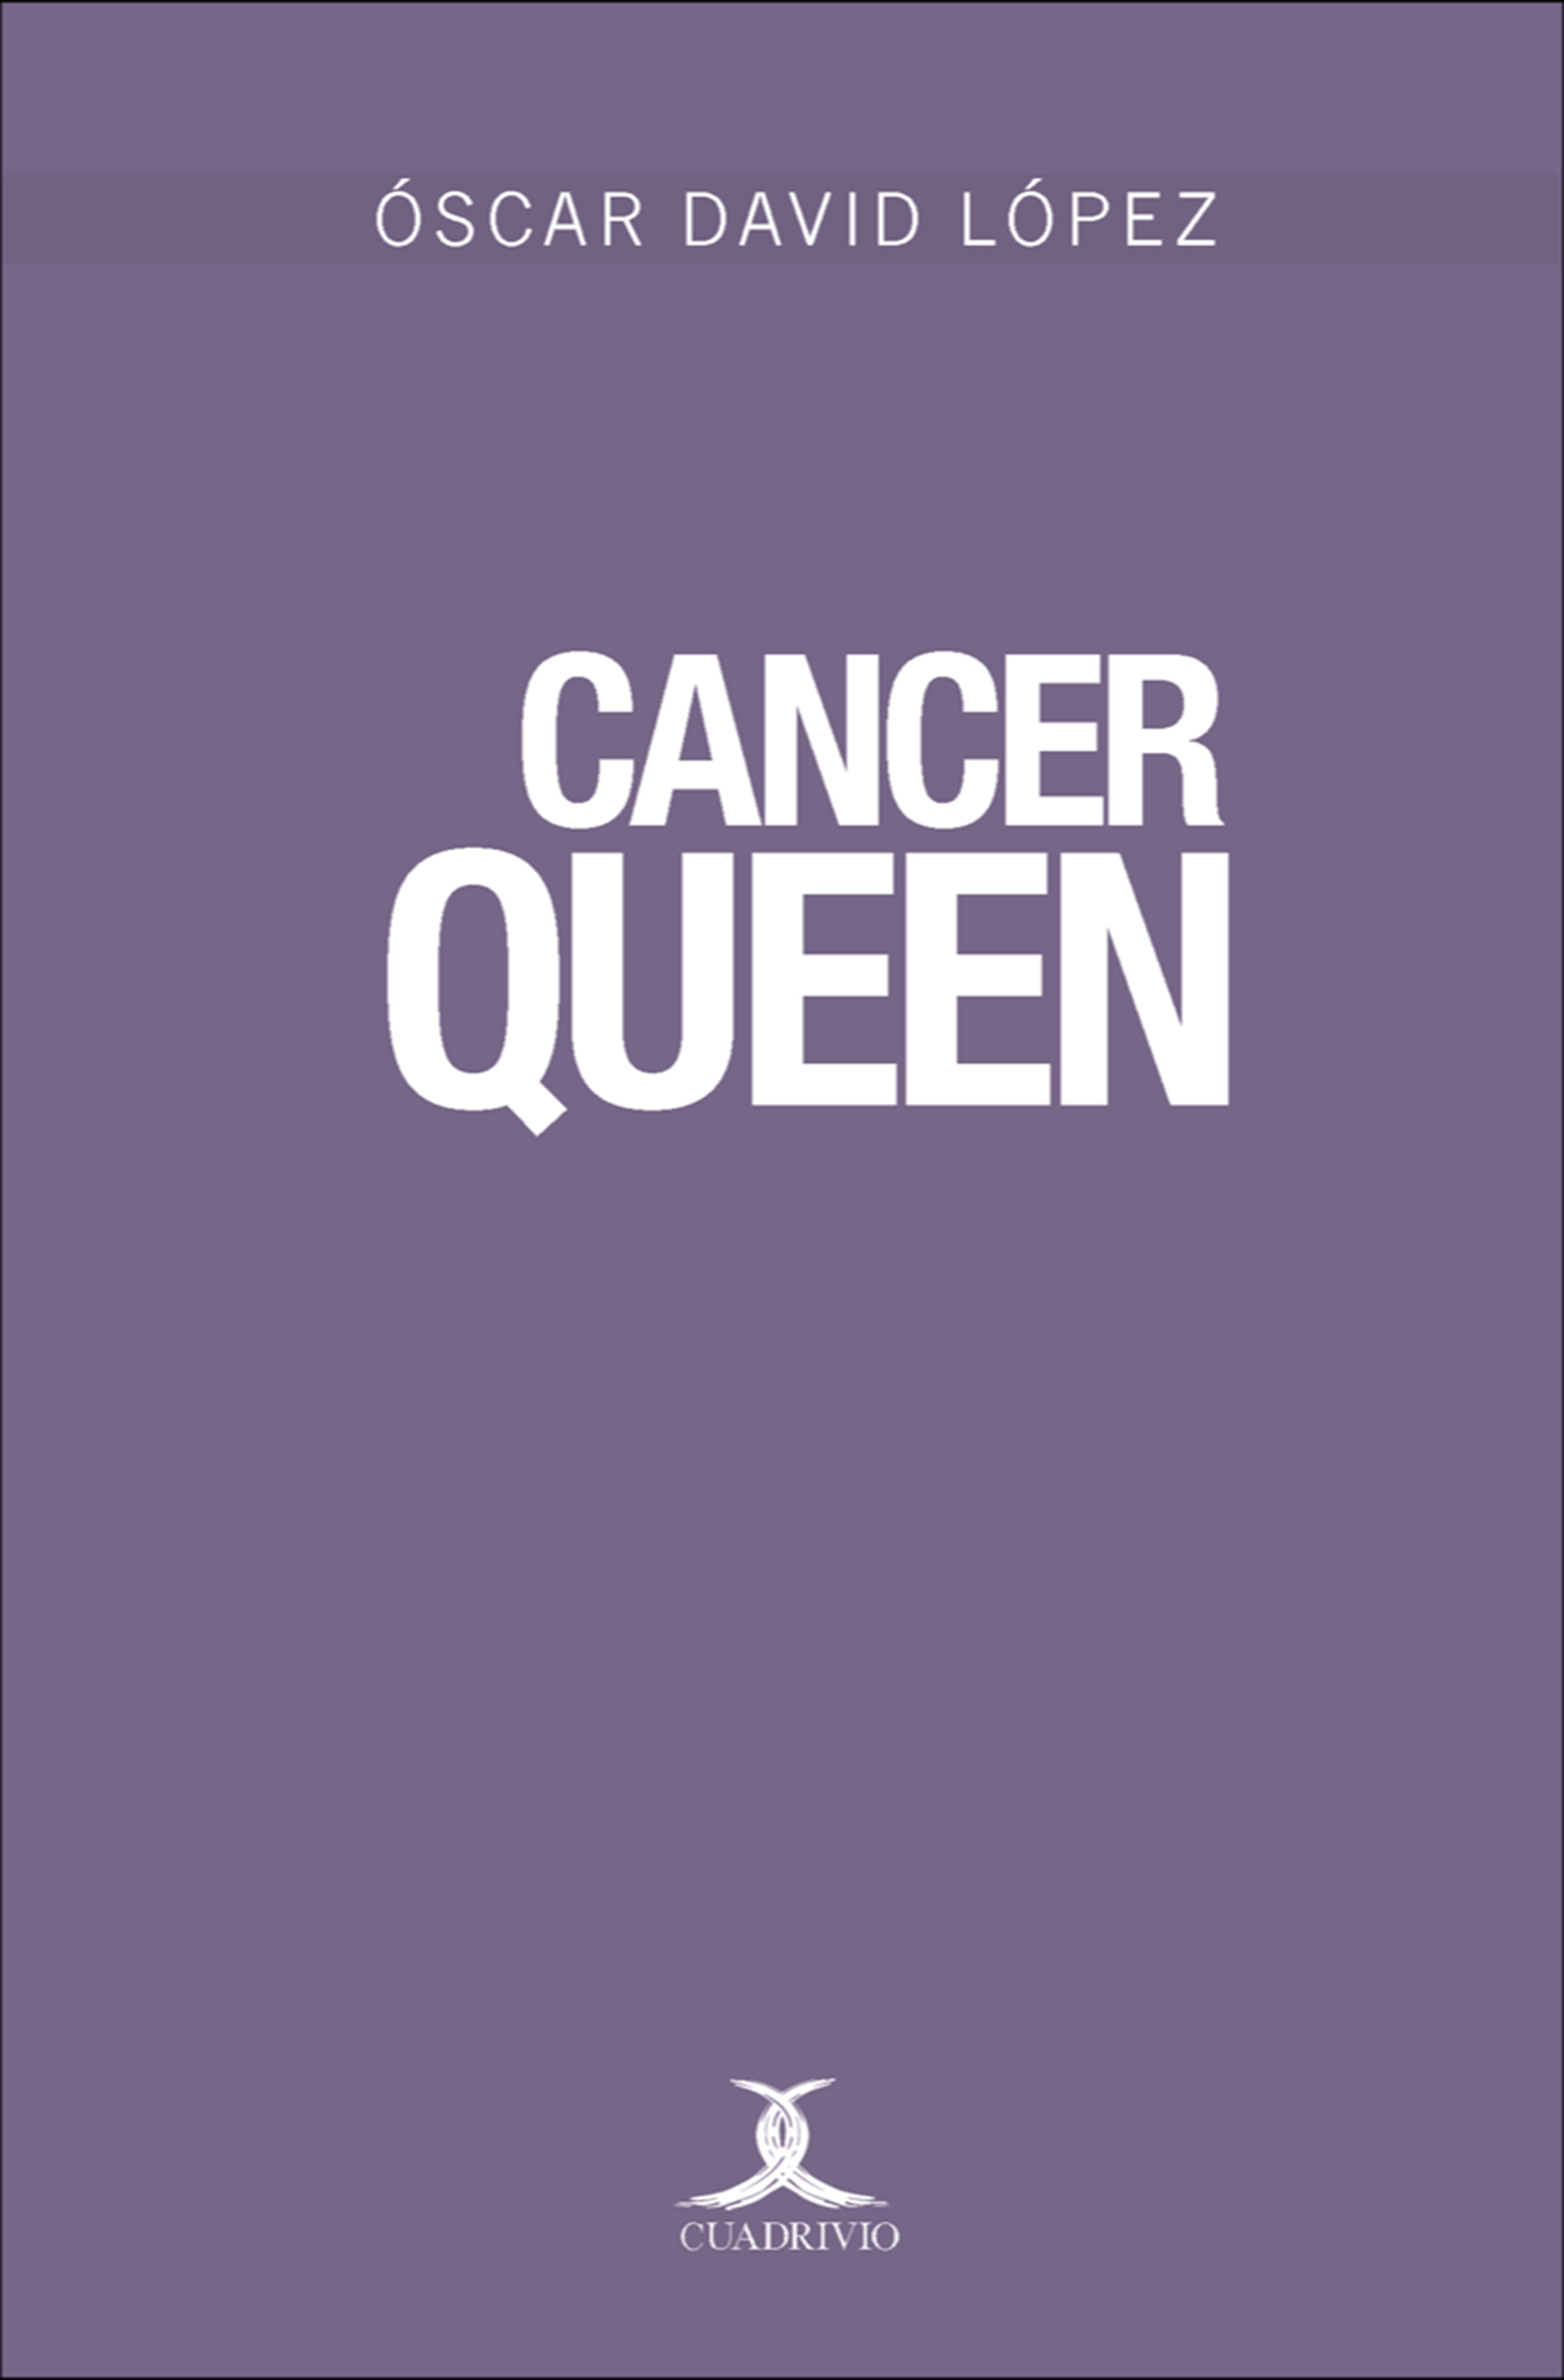 Cancer Queen 2019 ODL